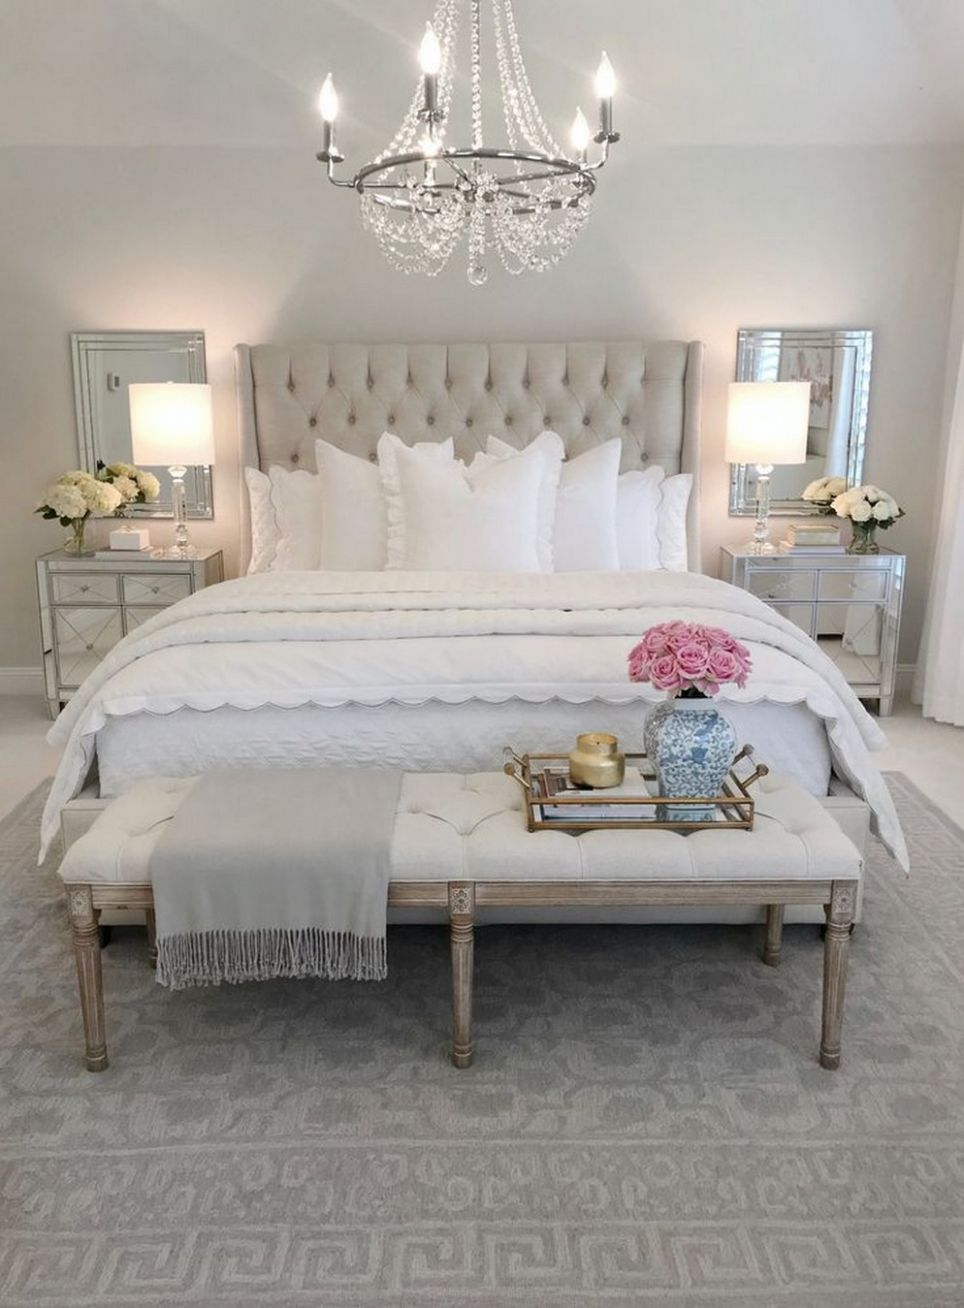 8+ Simple Master Bedroom Design Ideas For Inspirations ~ INSPIRA - bedroom ideas simple